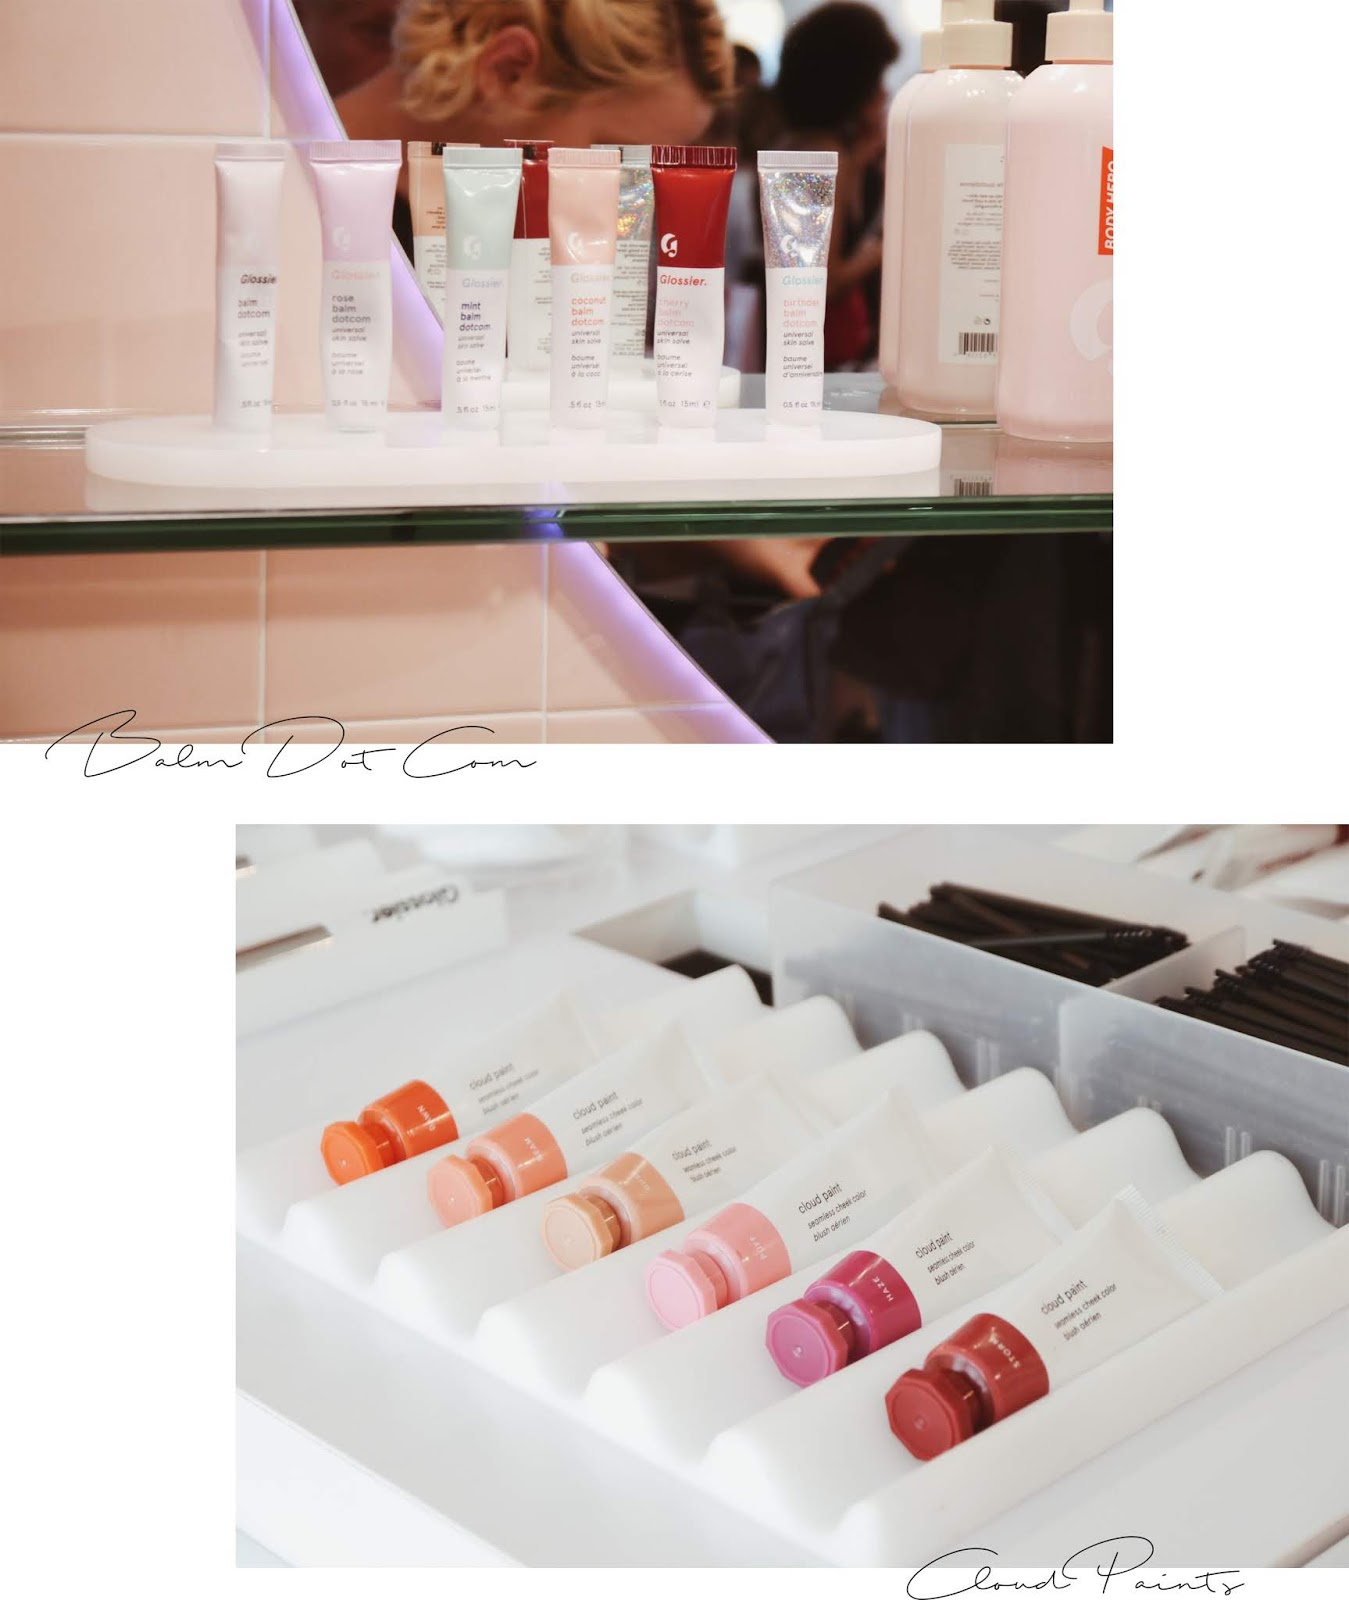 glossier showroom new york nyc noirette diary 8